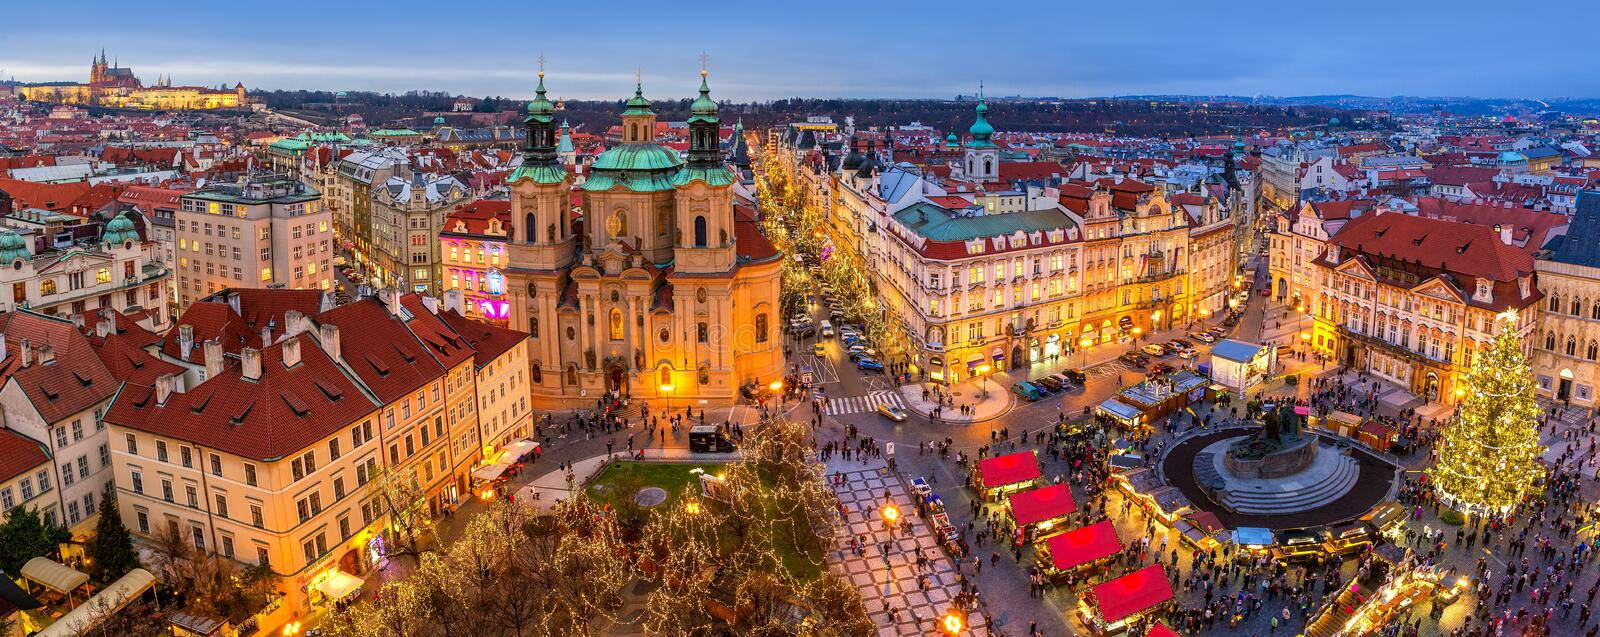 Panorama of Old Town of Prague at Christmas time. PRAGUE, CZECH REPUBLIC - DECEMBER 10, 2015: Panoramic view from above of city skyline, illuminated buildings